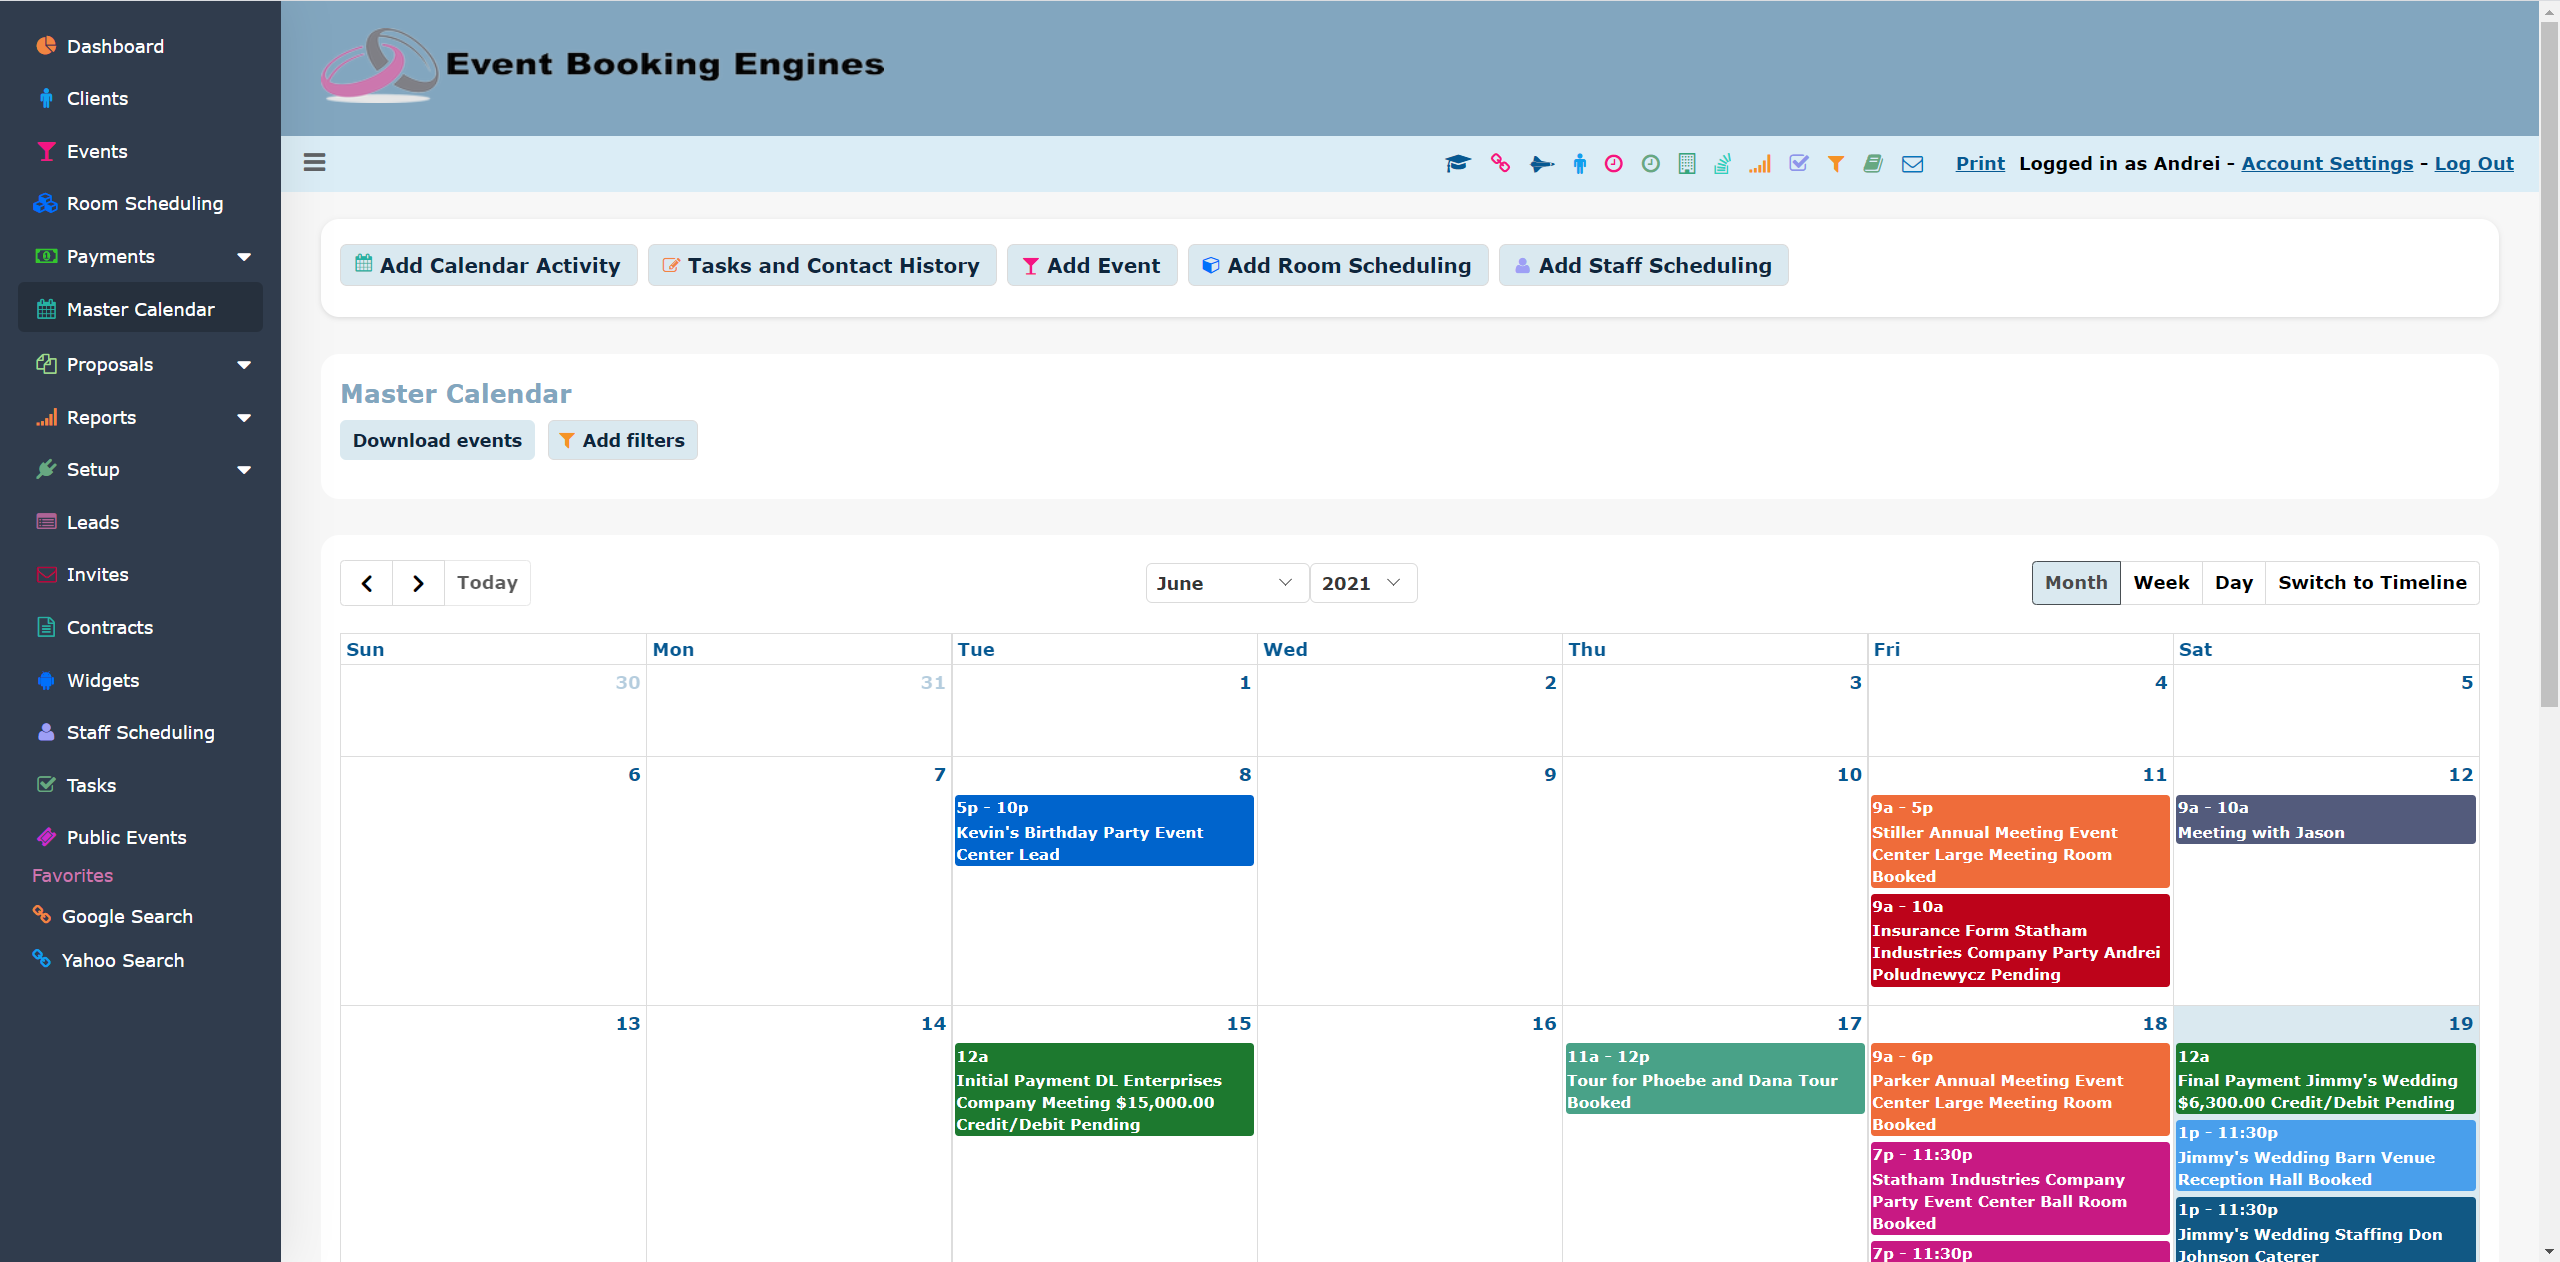 Event Booking Engines Software - 5